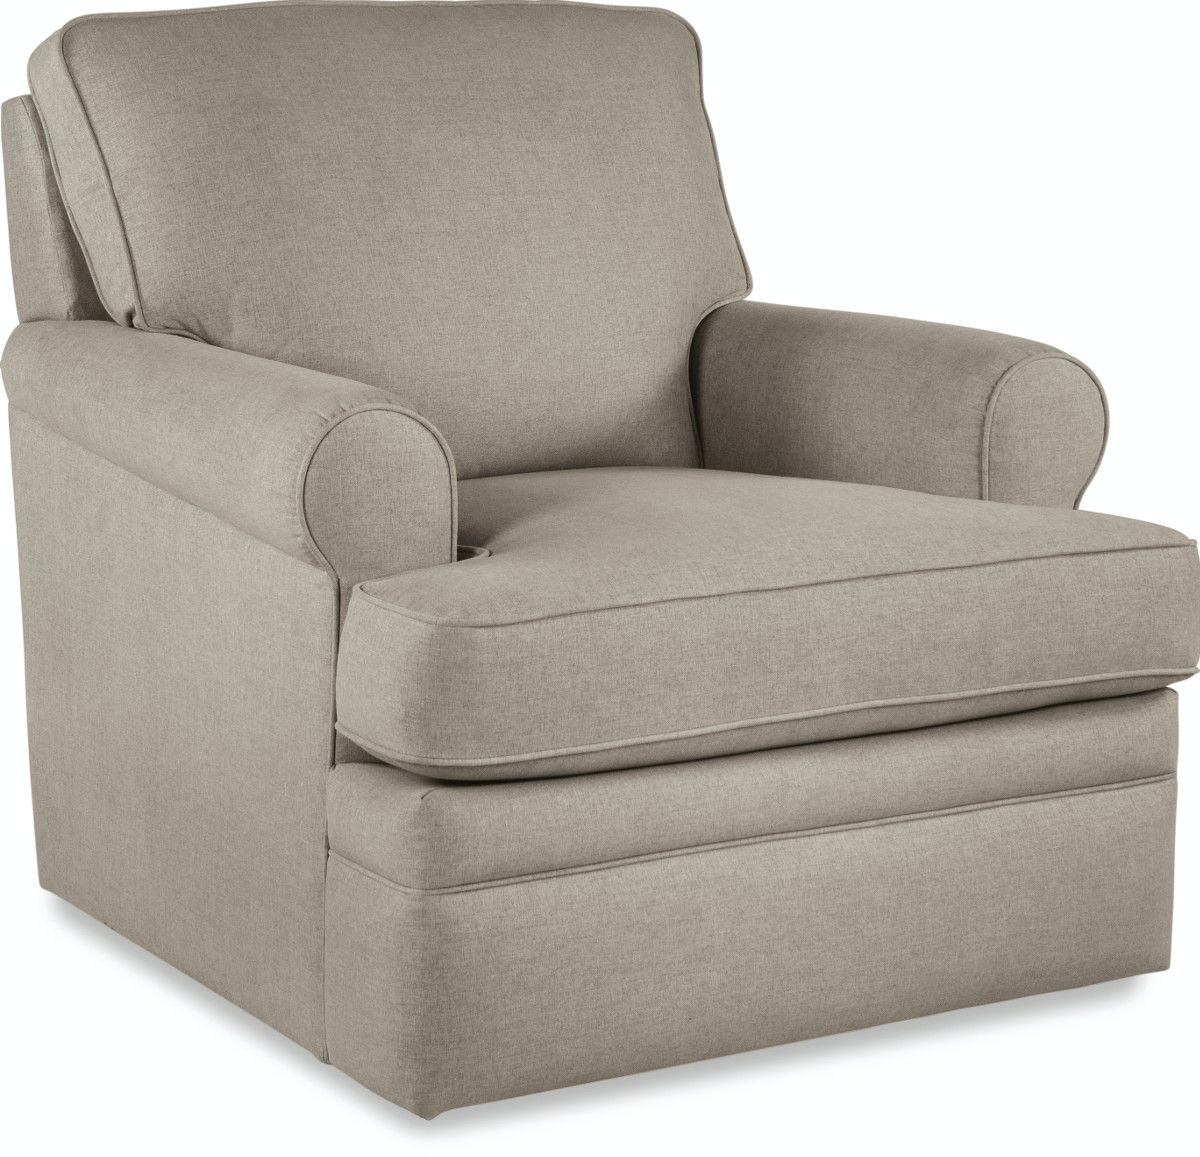 La-Z-Boy® Premier Swivel Occasional Chair 215462  sc 1 st  Union Furniture : occasional chairs swivel - Cheerinfomania.Com